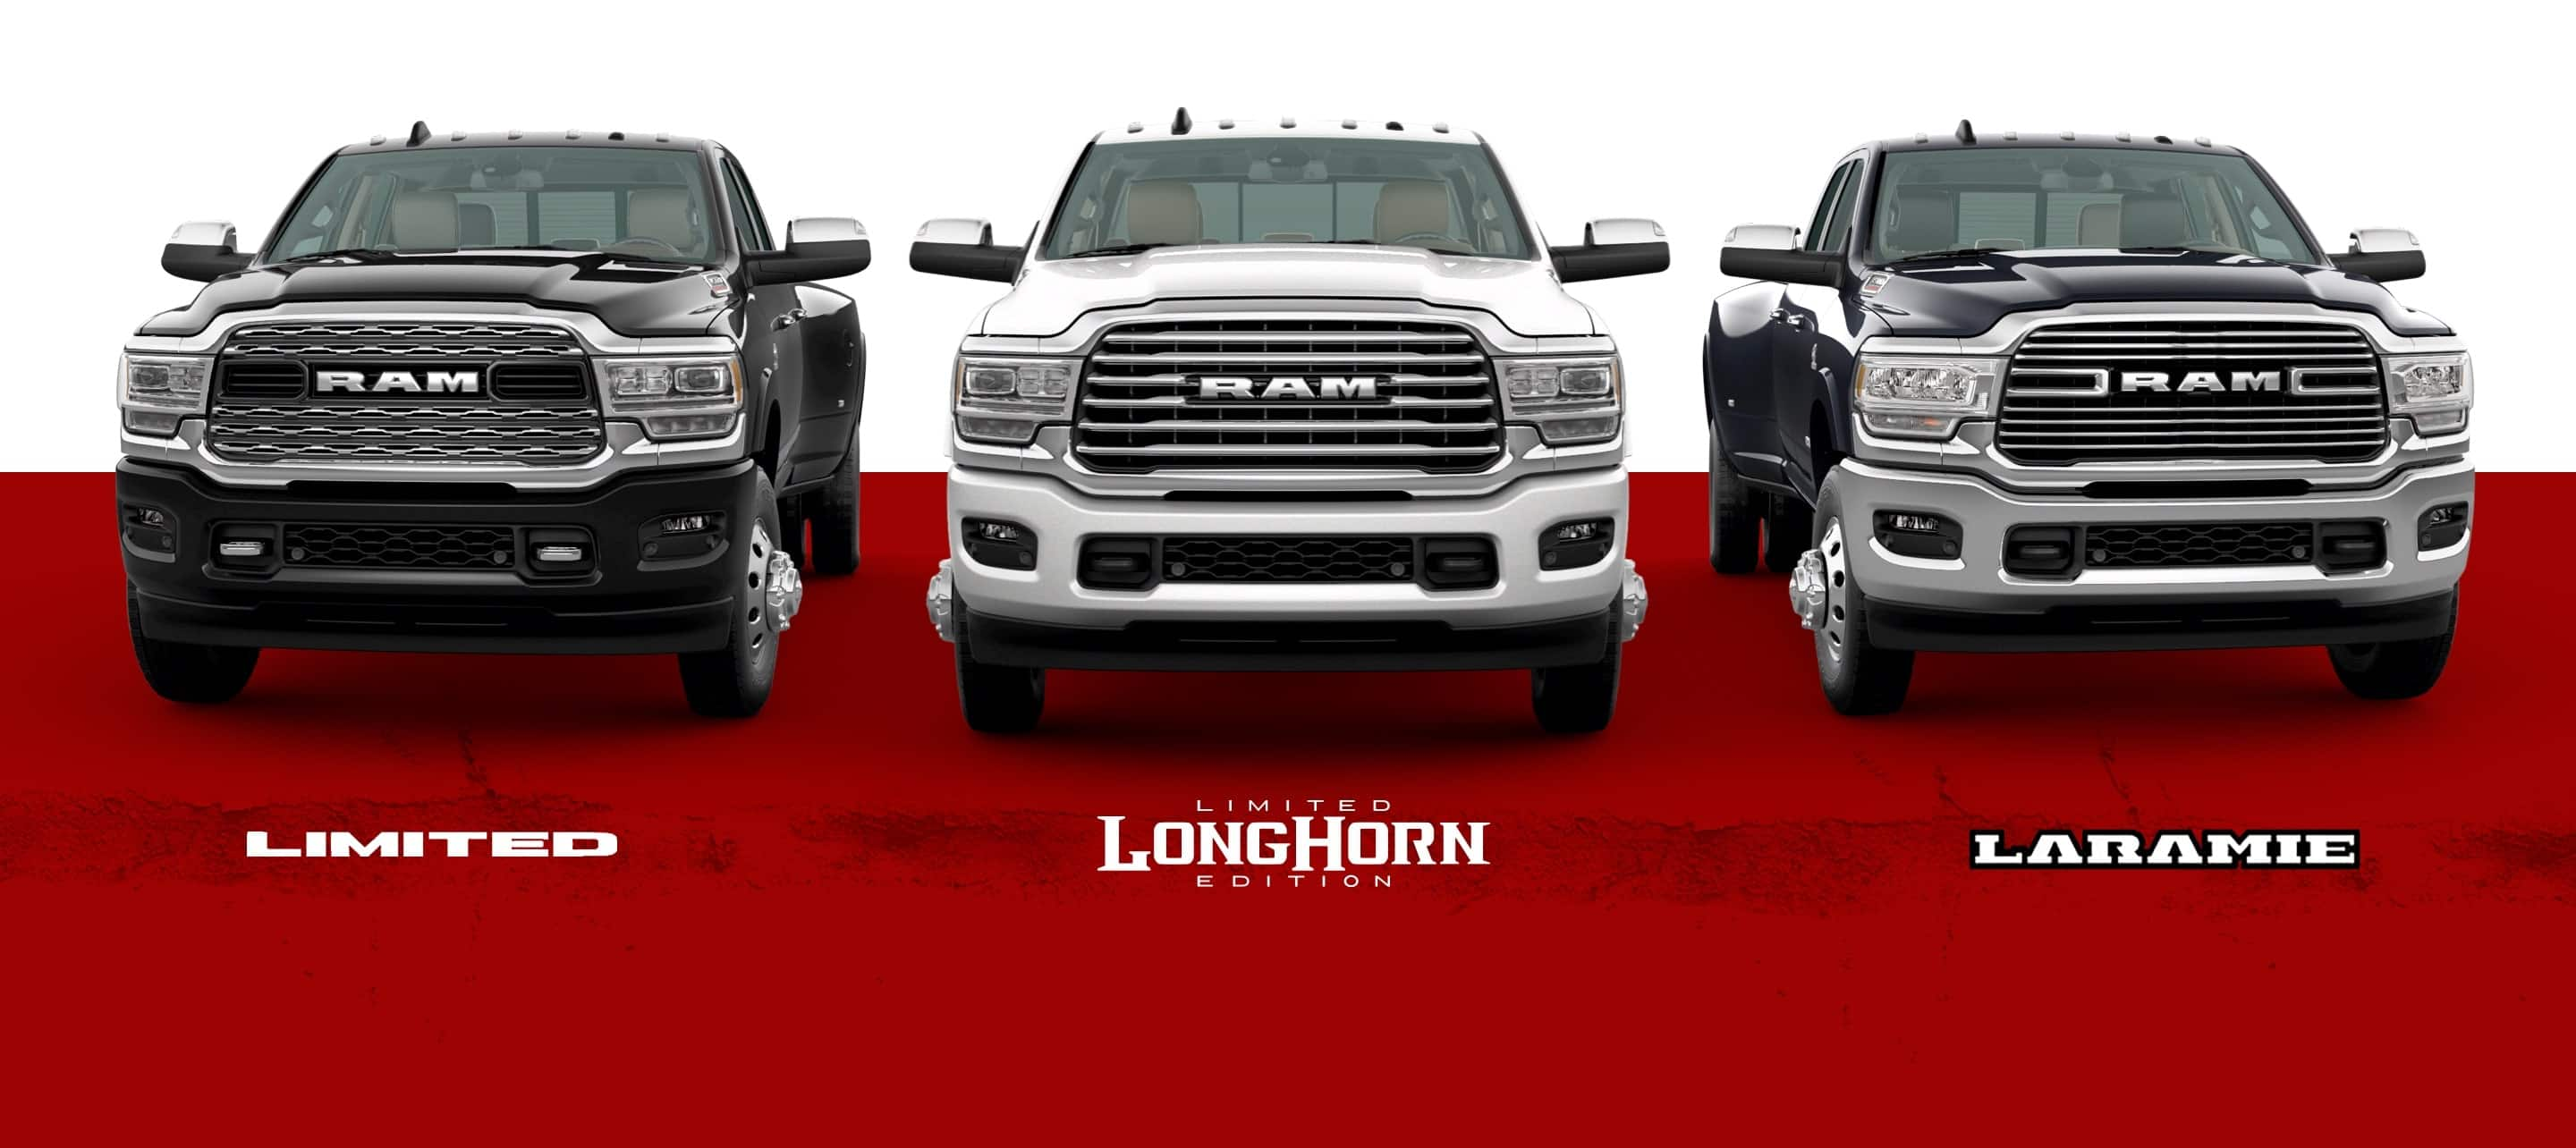 A slider showing three of the 2021 Ram 3500 trim levels: Limited, Limited Longhorn Edition, and Laramie.